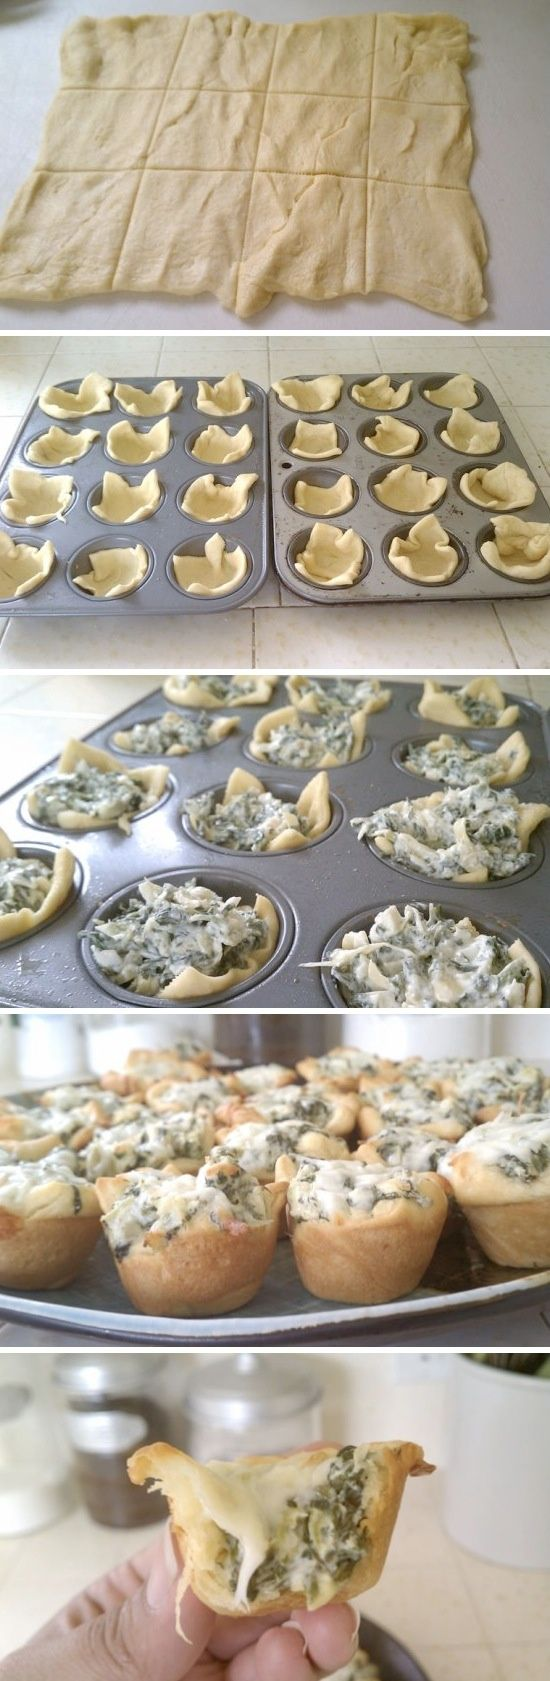 Spinach Artichoke Bites...fantastic and delicious party appetizers!